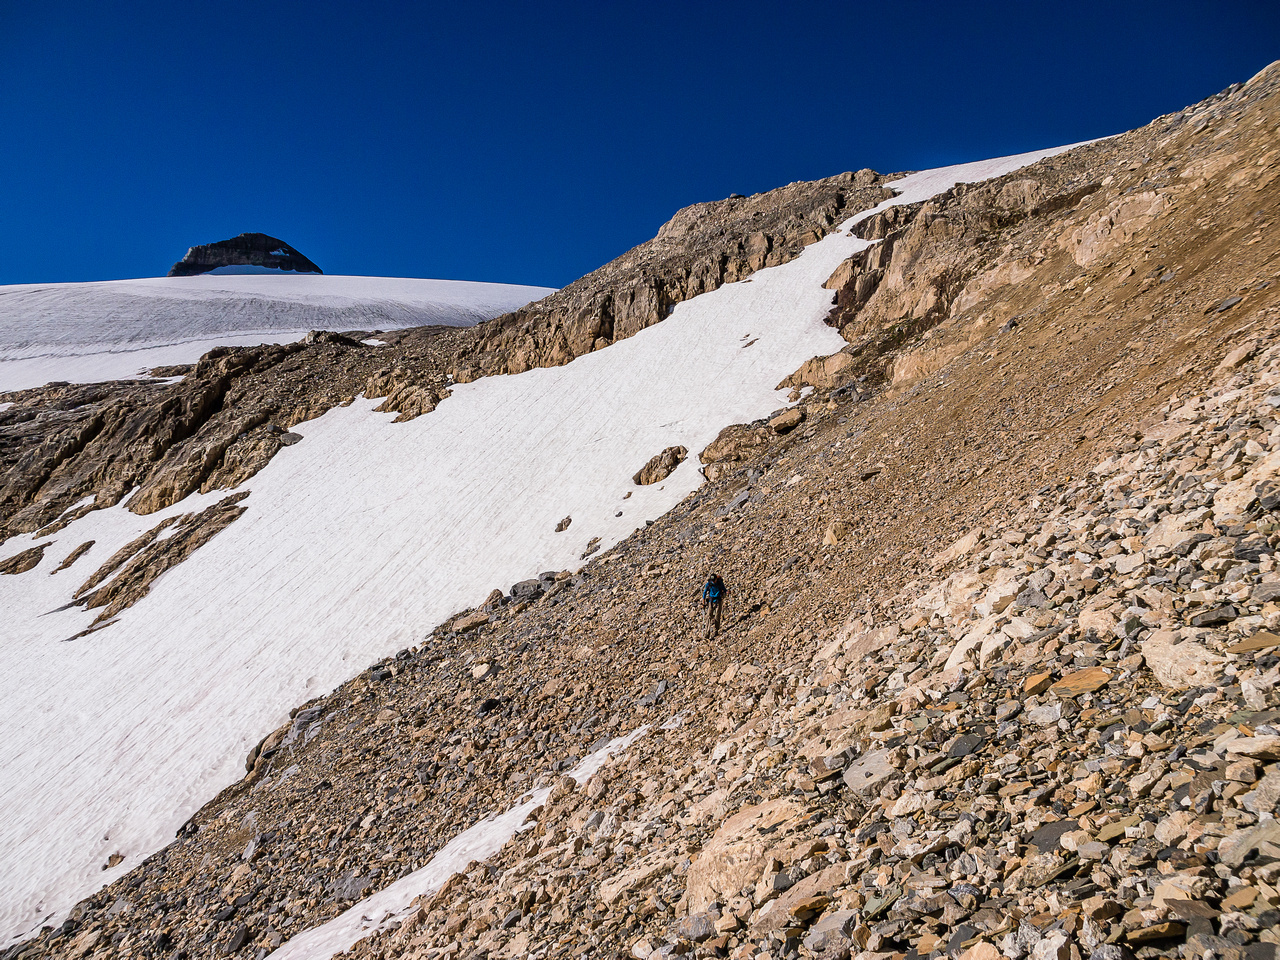 Descending from the bivy back to the plateau.